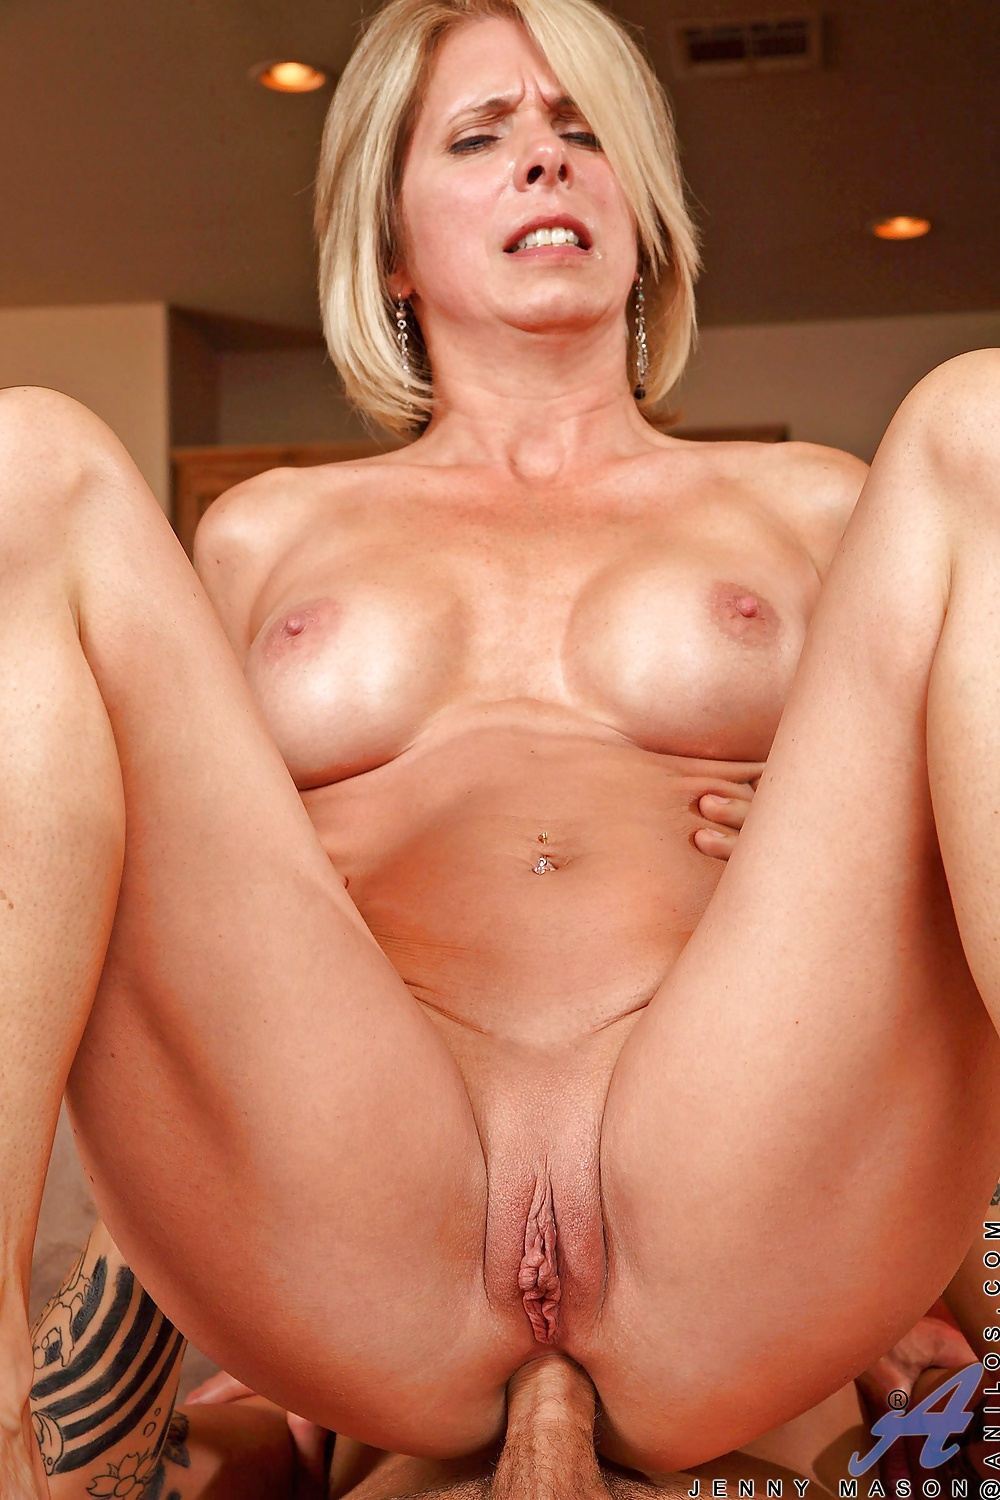 milf-nudesex-girls-physical-exam-video